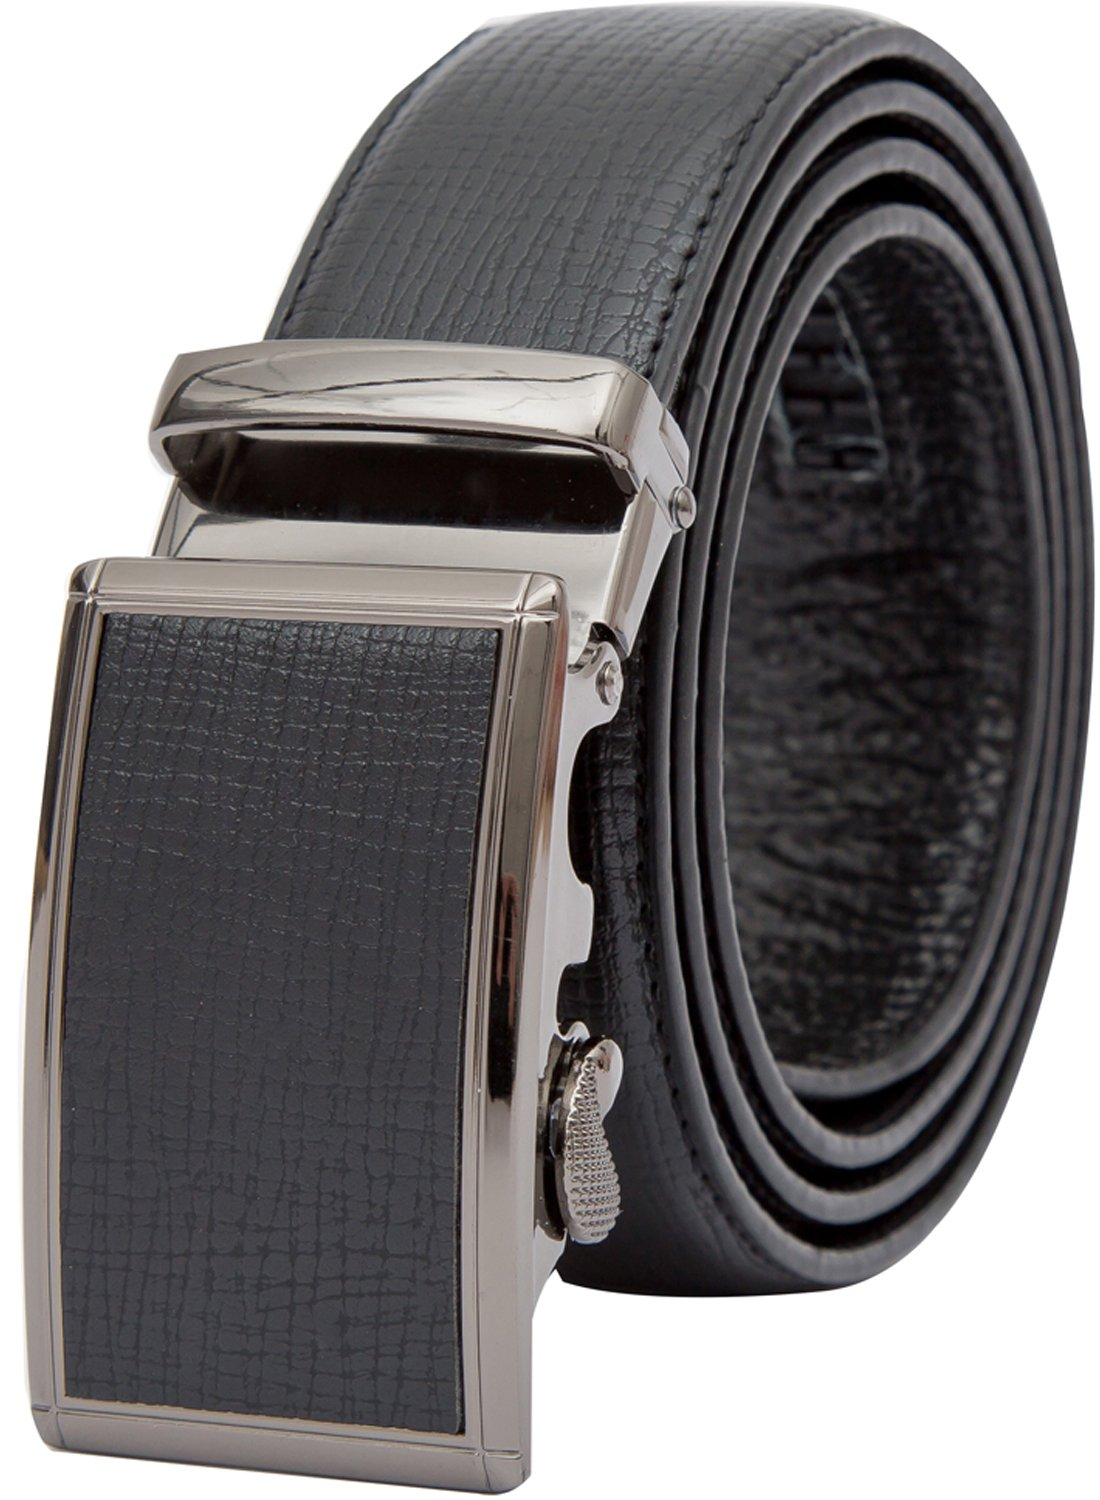 Beltox Fine Men's Ratchet Dress Leather Belt with Automatic Buckle in Gift Box (Waist size 44-46, Black Cross belt)